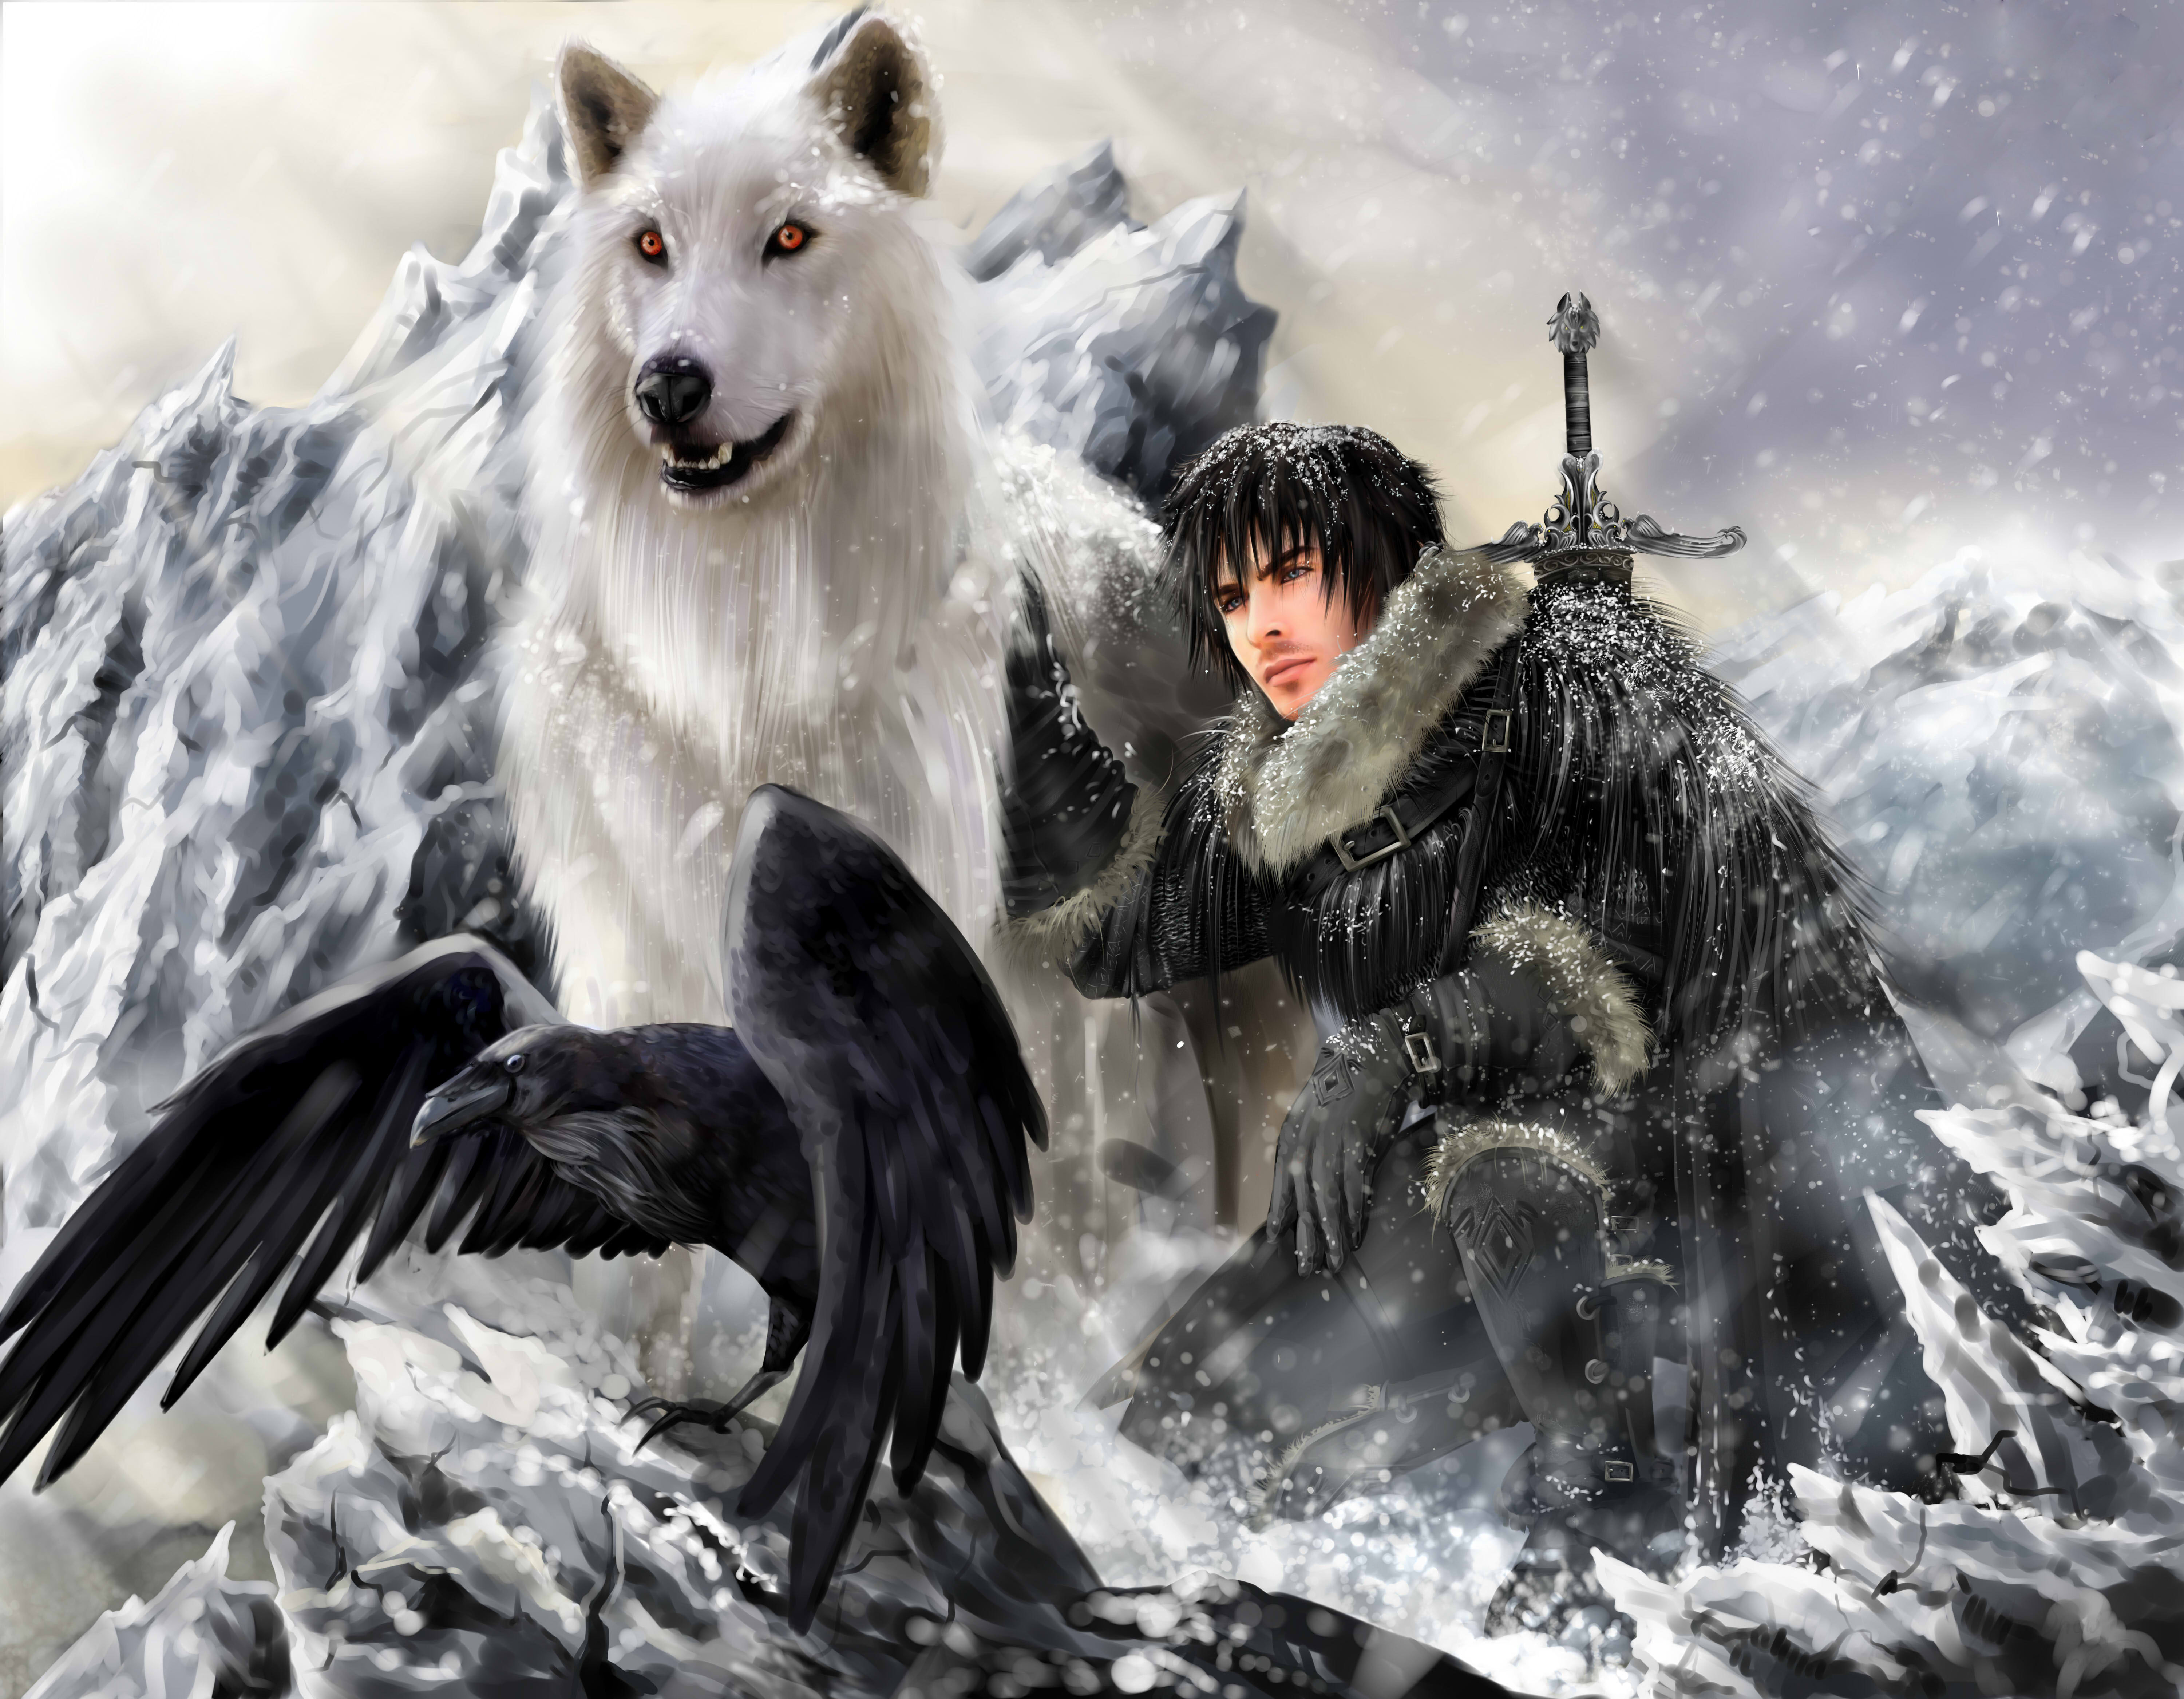 The song of ice and fire Game of thrones Jon snow Ghost Direwolf Stark clan